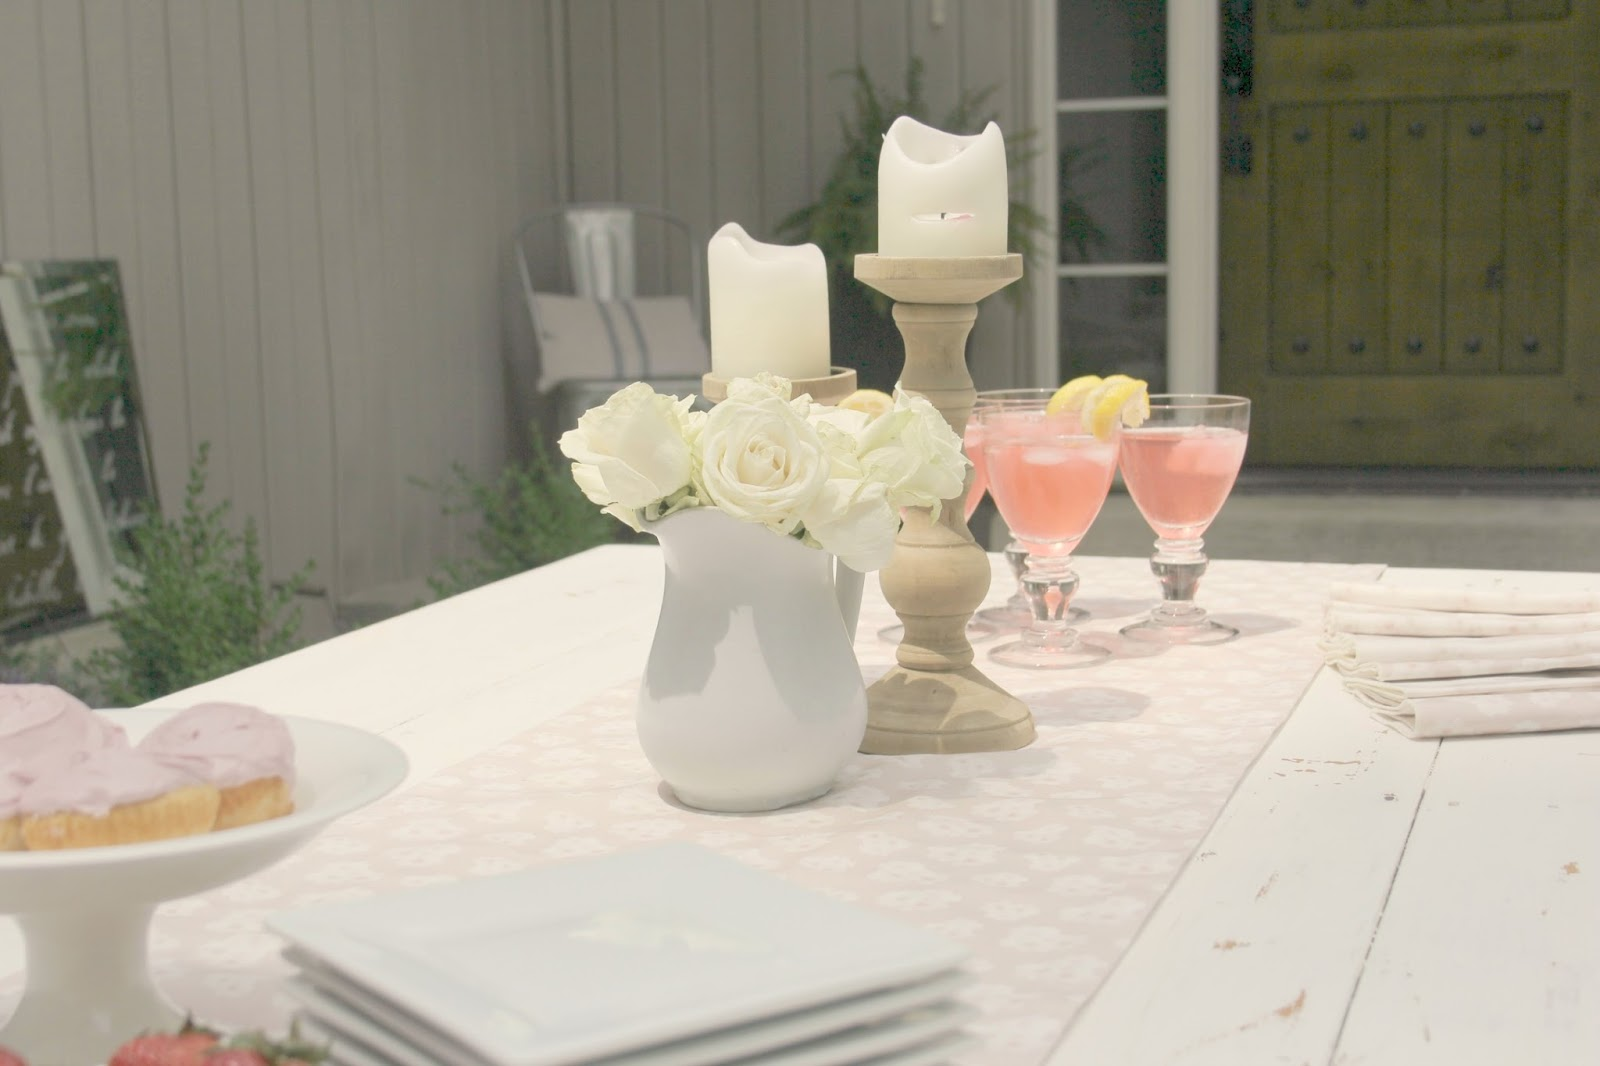 White farm table set with cupcakes and cocktails - Hello Lovely Studio